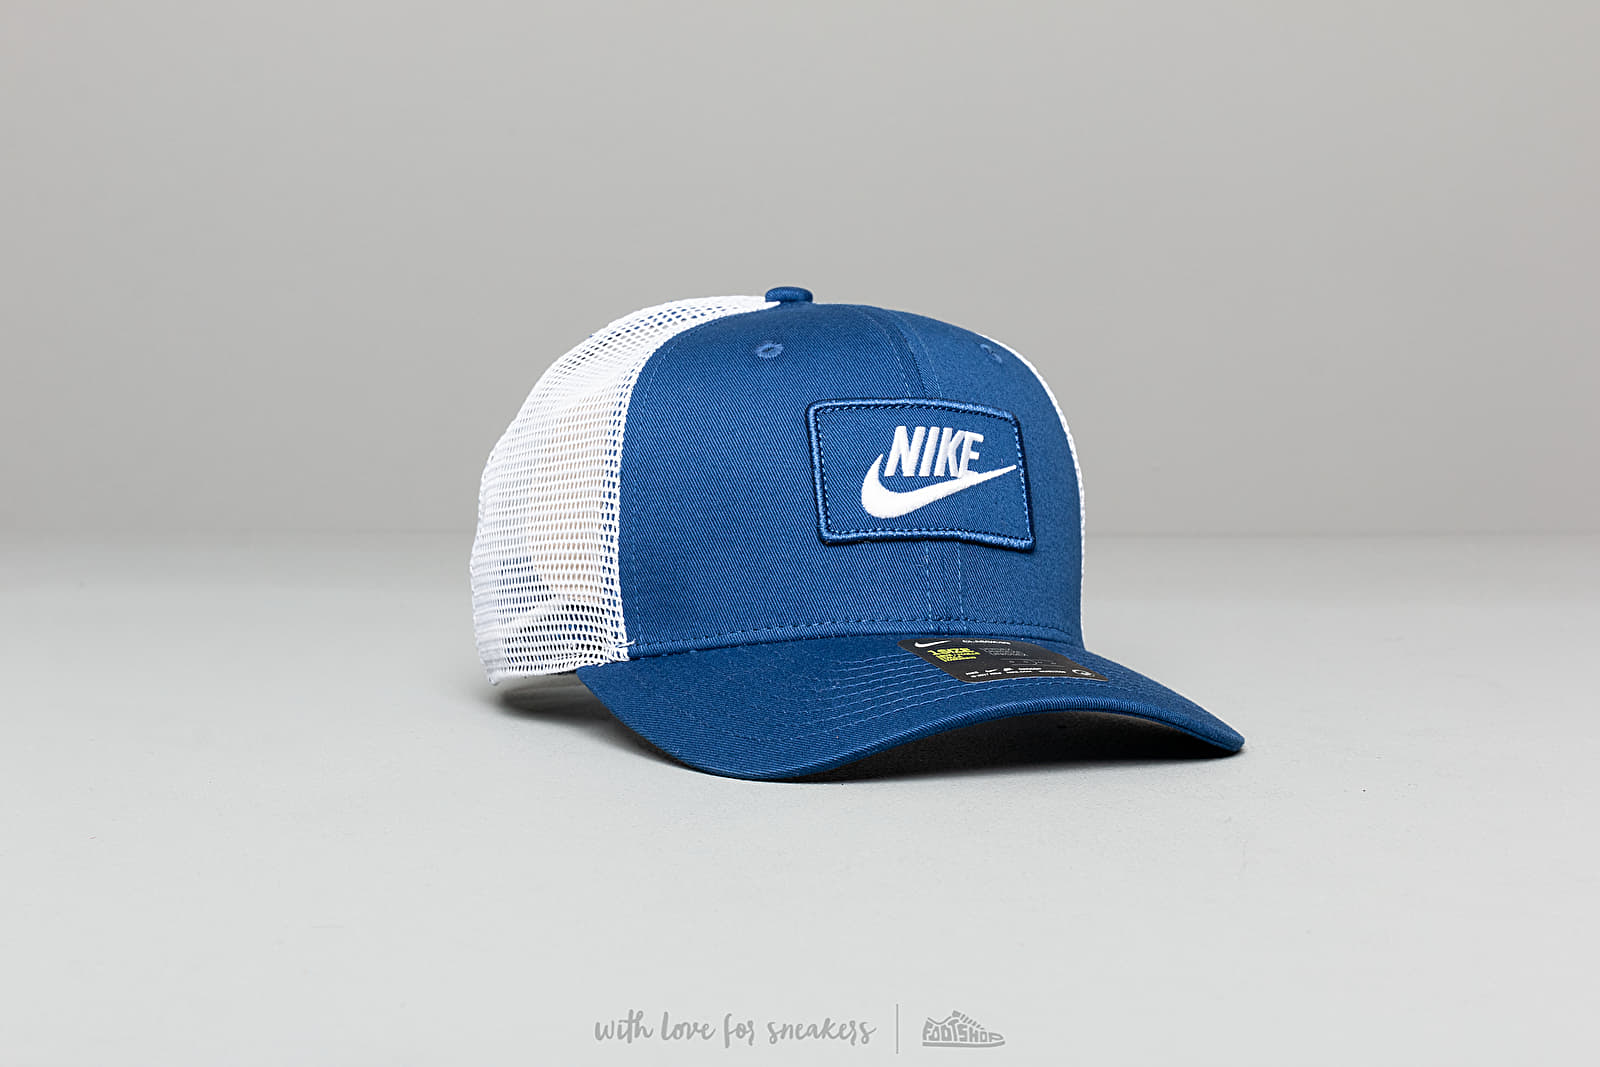 309afbc5ac547 Nike Sportswear Classic 99 Trucker Cap Blue  White at a great price  30 buy  at